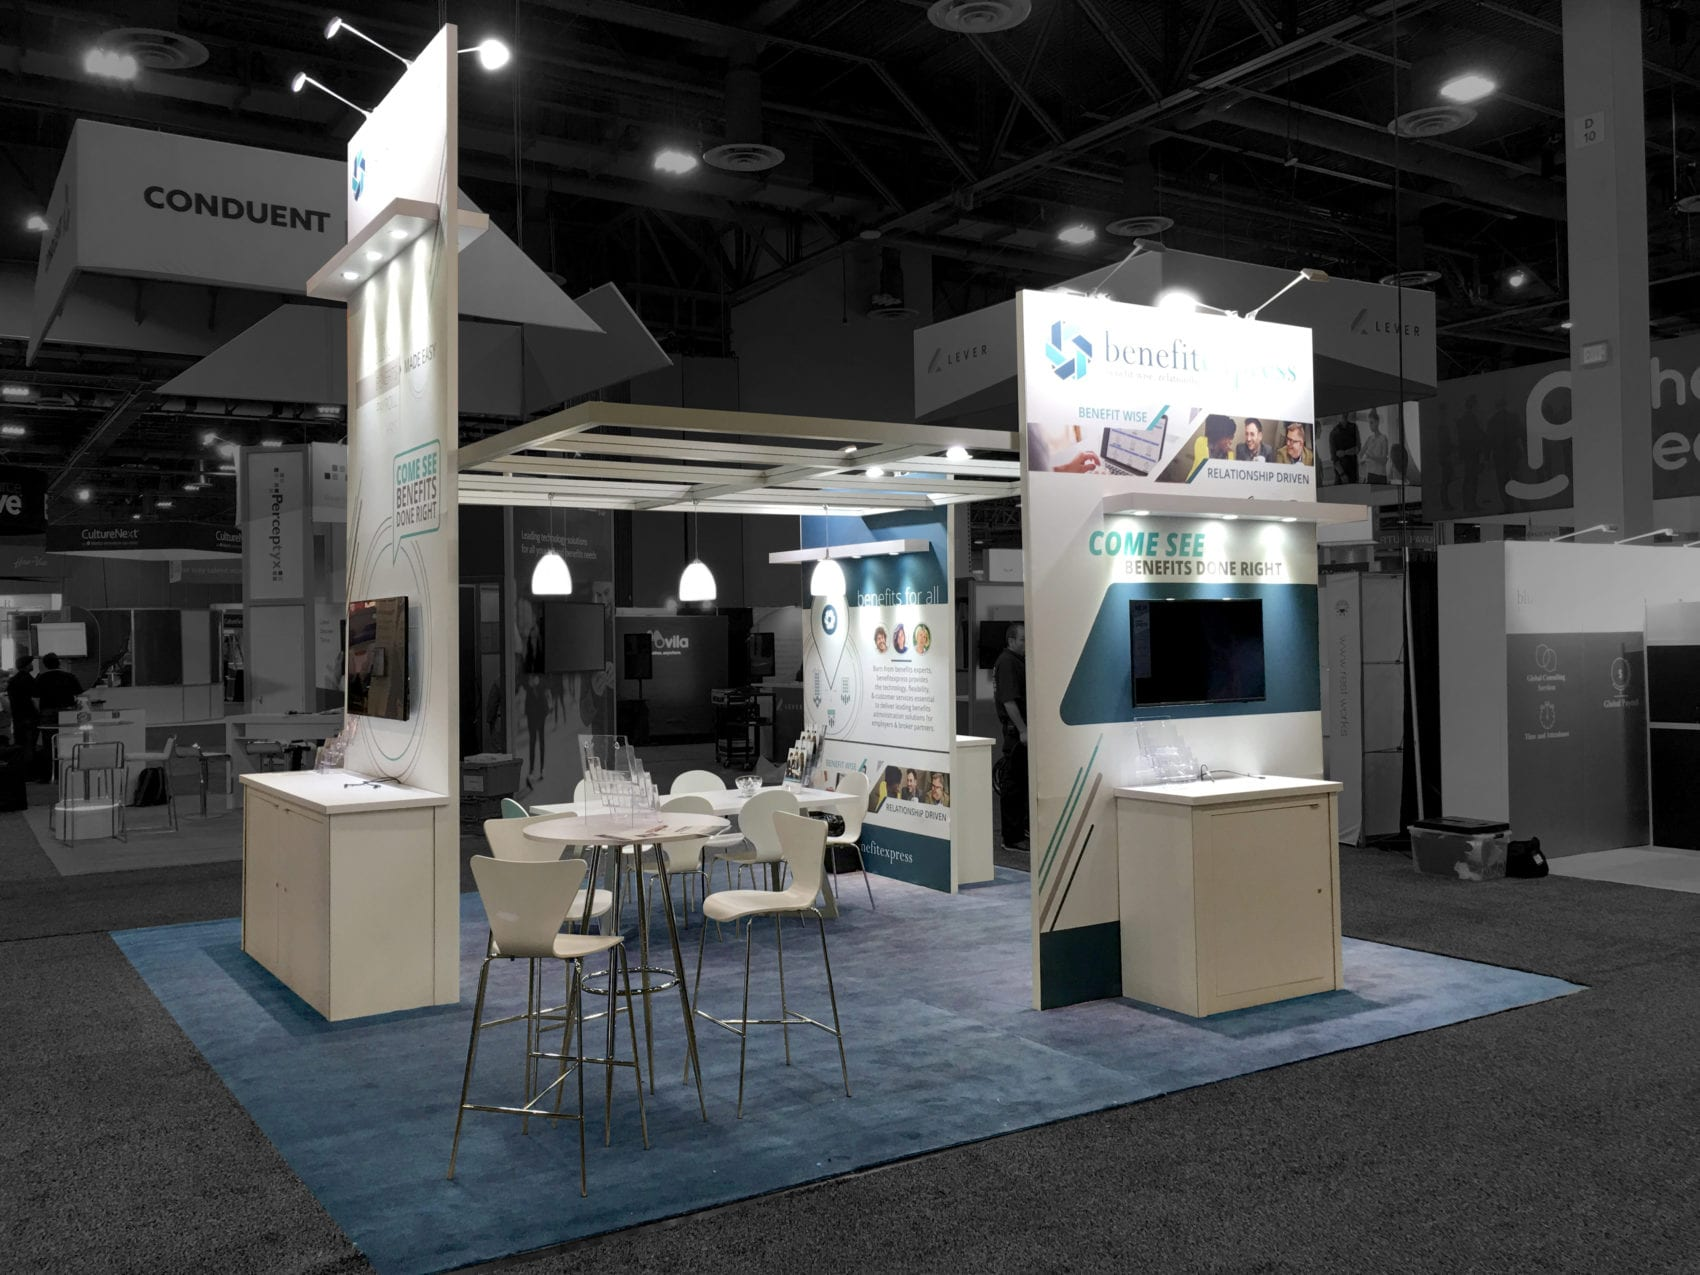 Exhibition Booth Design Award : Hr tech conference booth benefit express evo